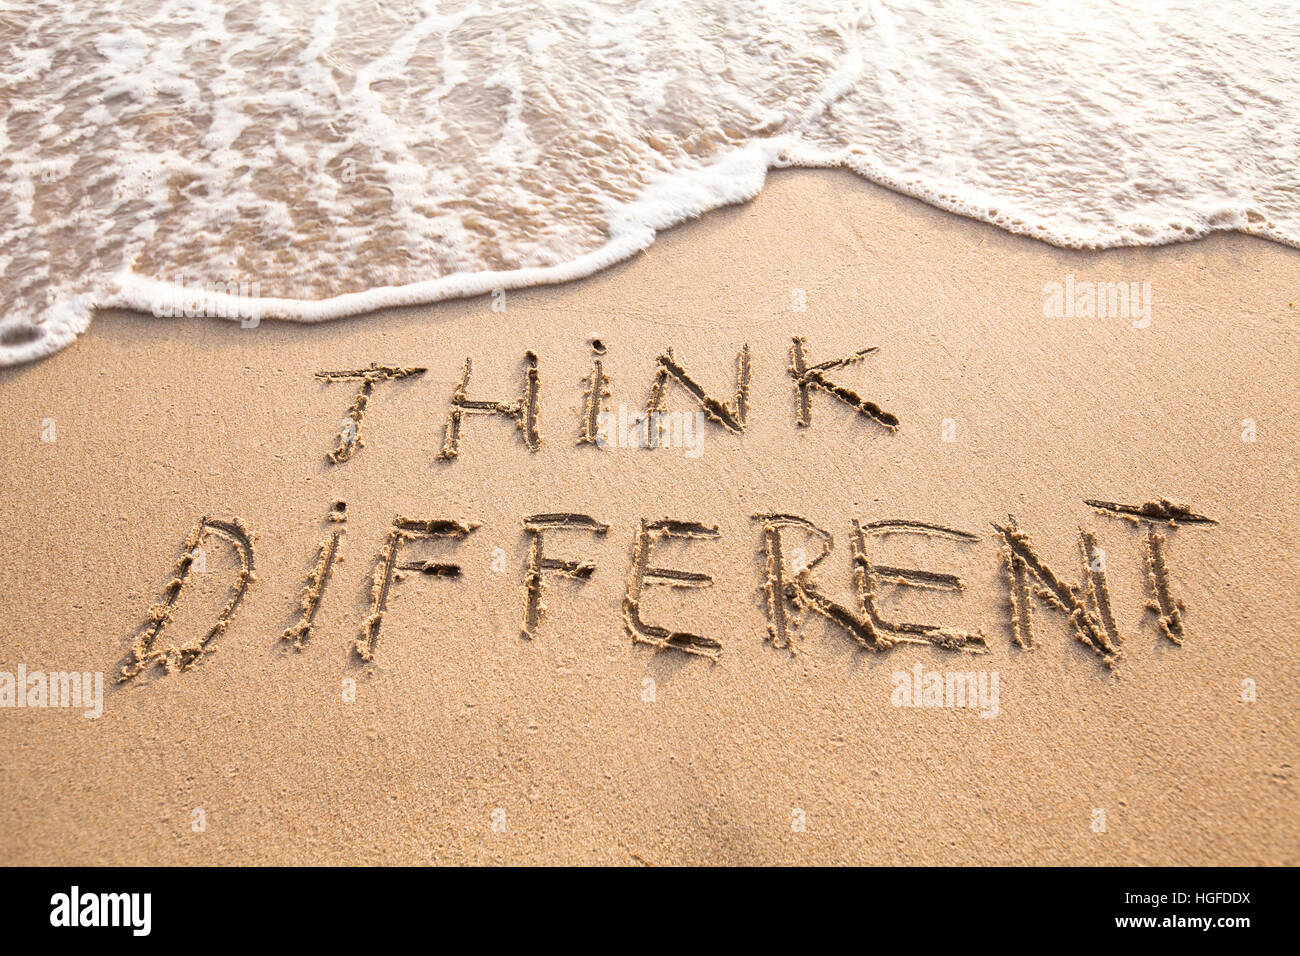 think different concept - Stock Image